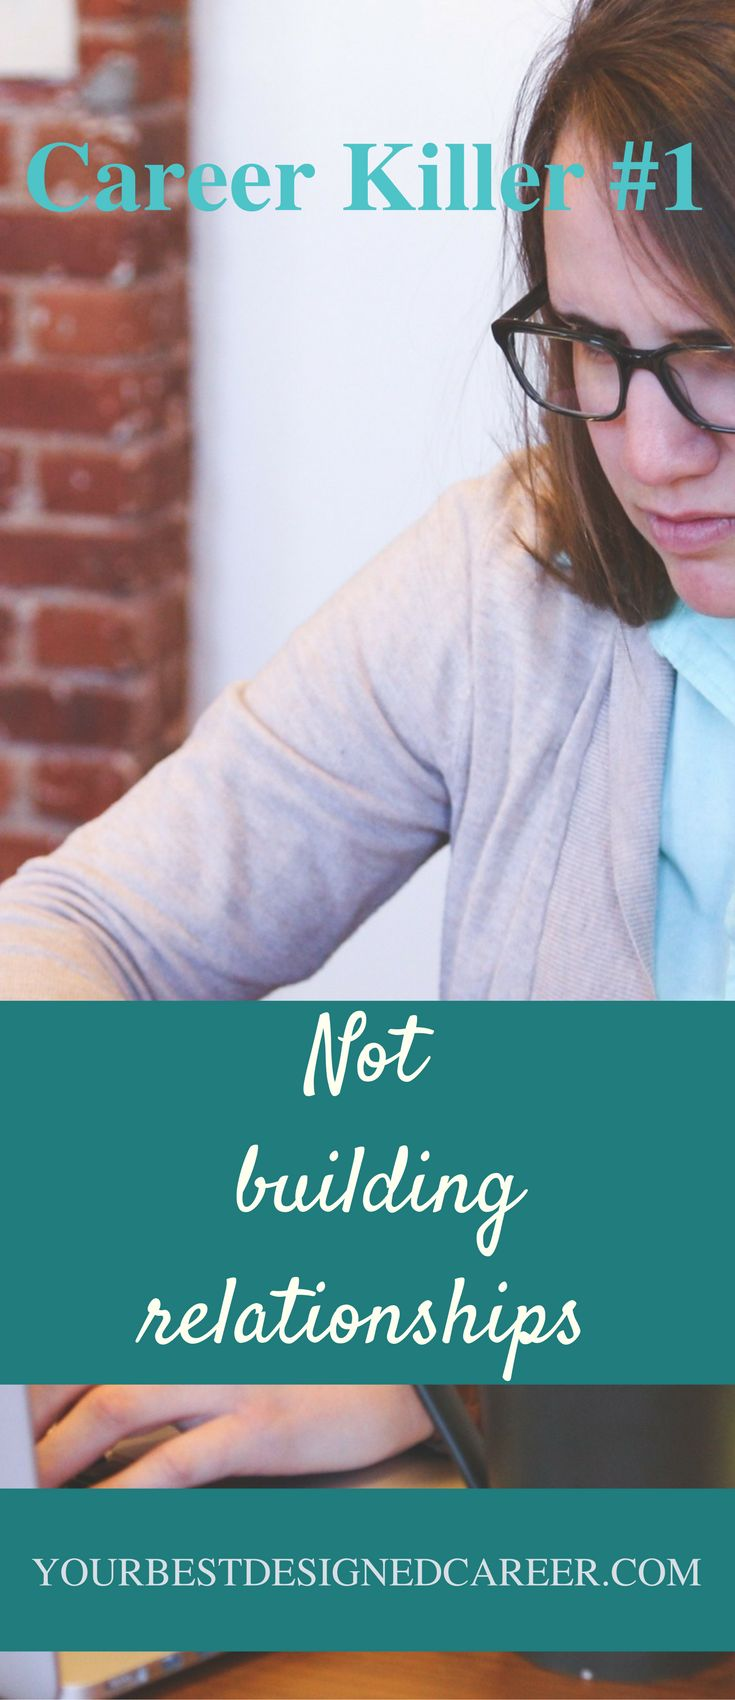 Are you building relationships at work? If not, you may find that you will not get as far in your career.